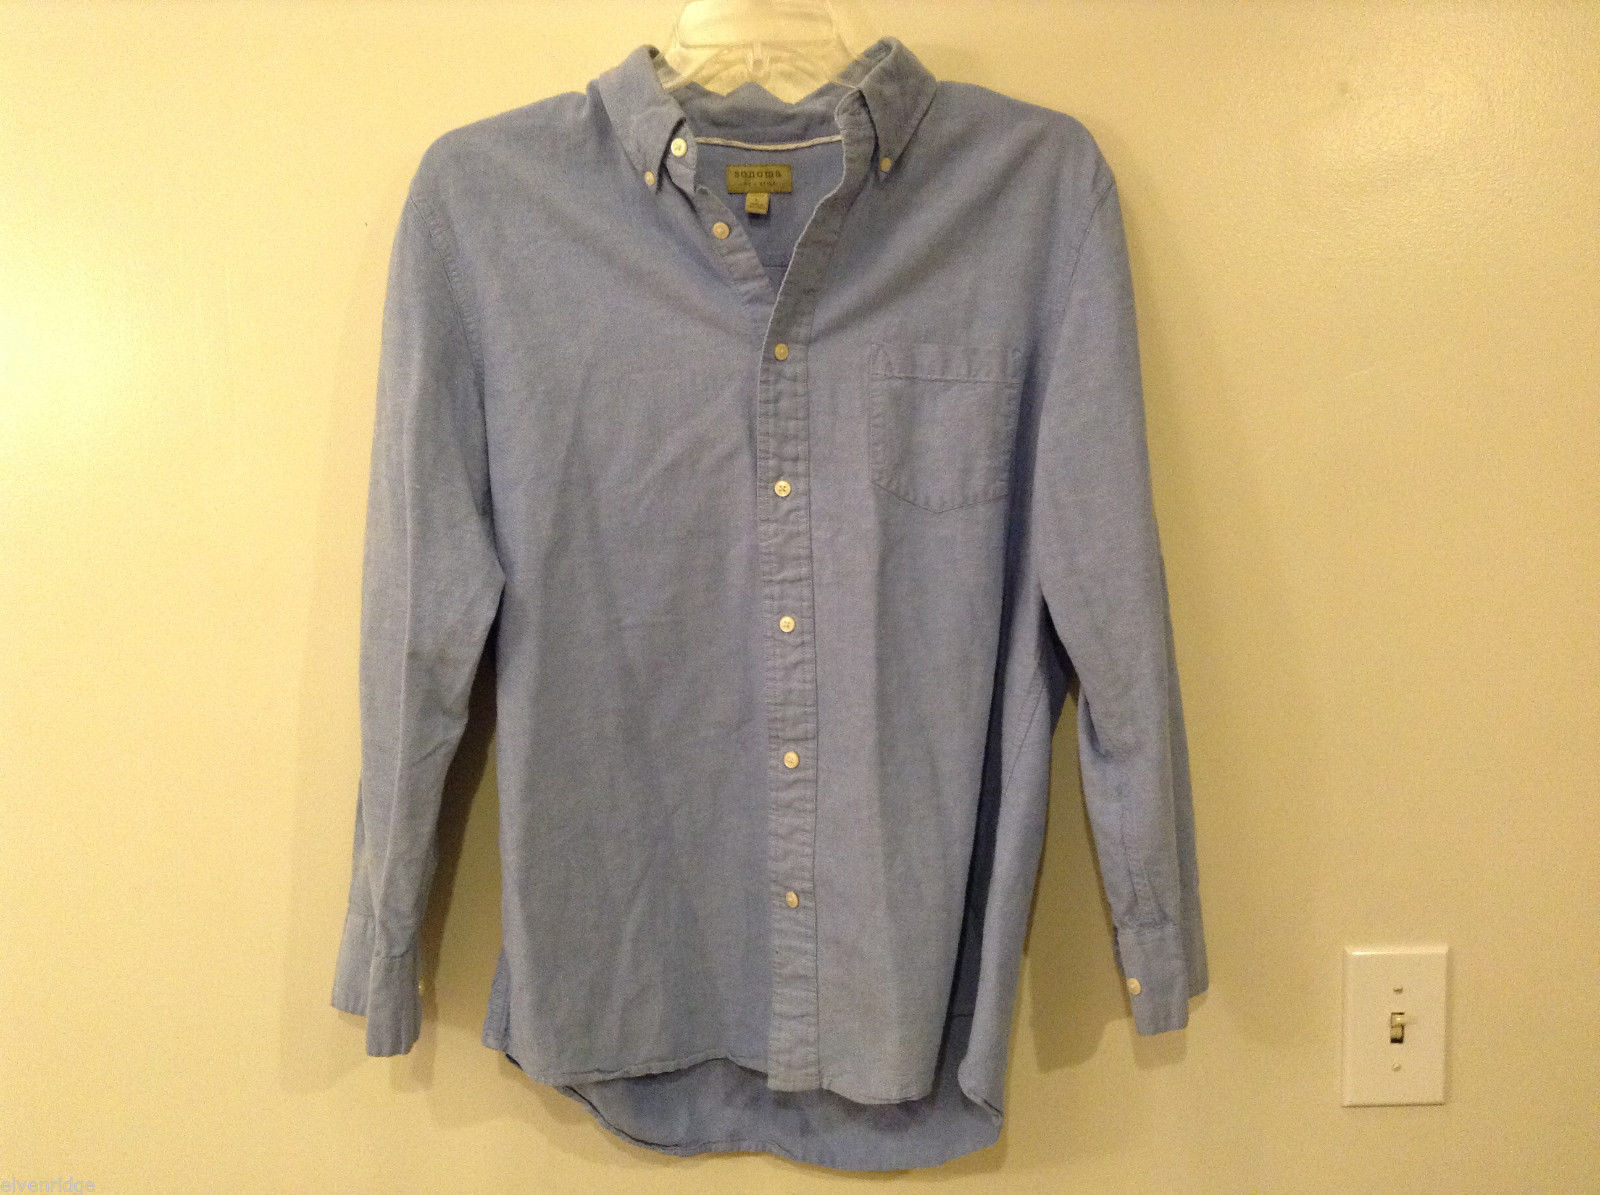 Sonoma Men's Size L Blue Oxford Cloth Button-Front Shirt OCBD Button-Down Collar